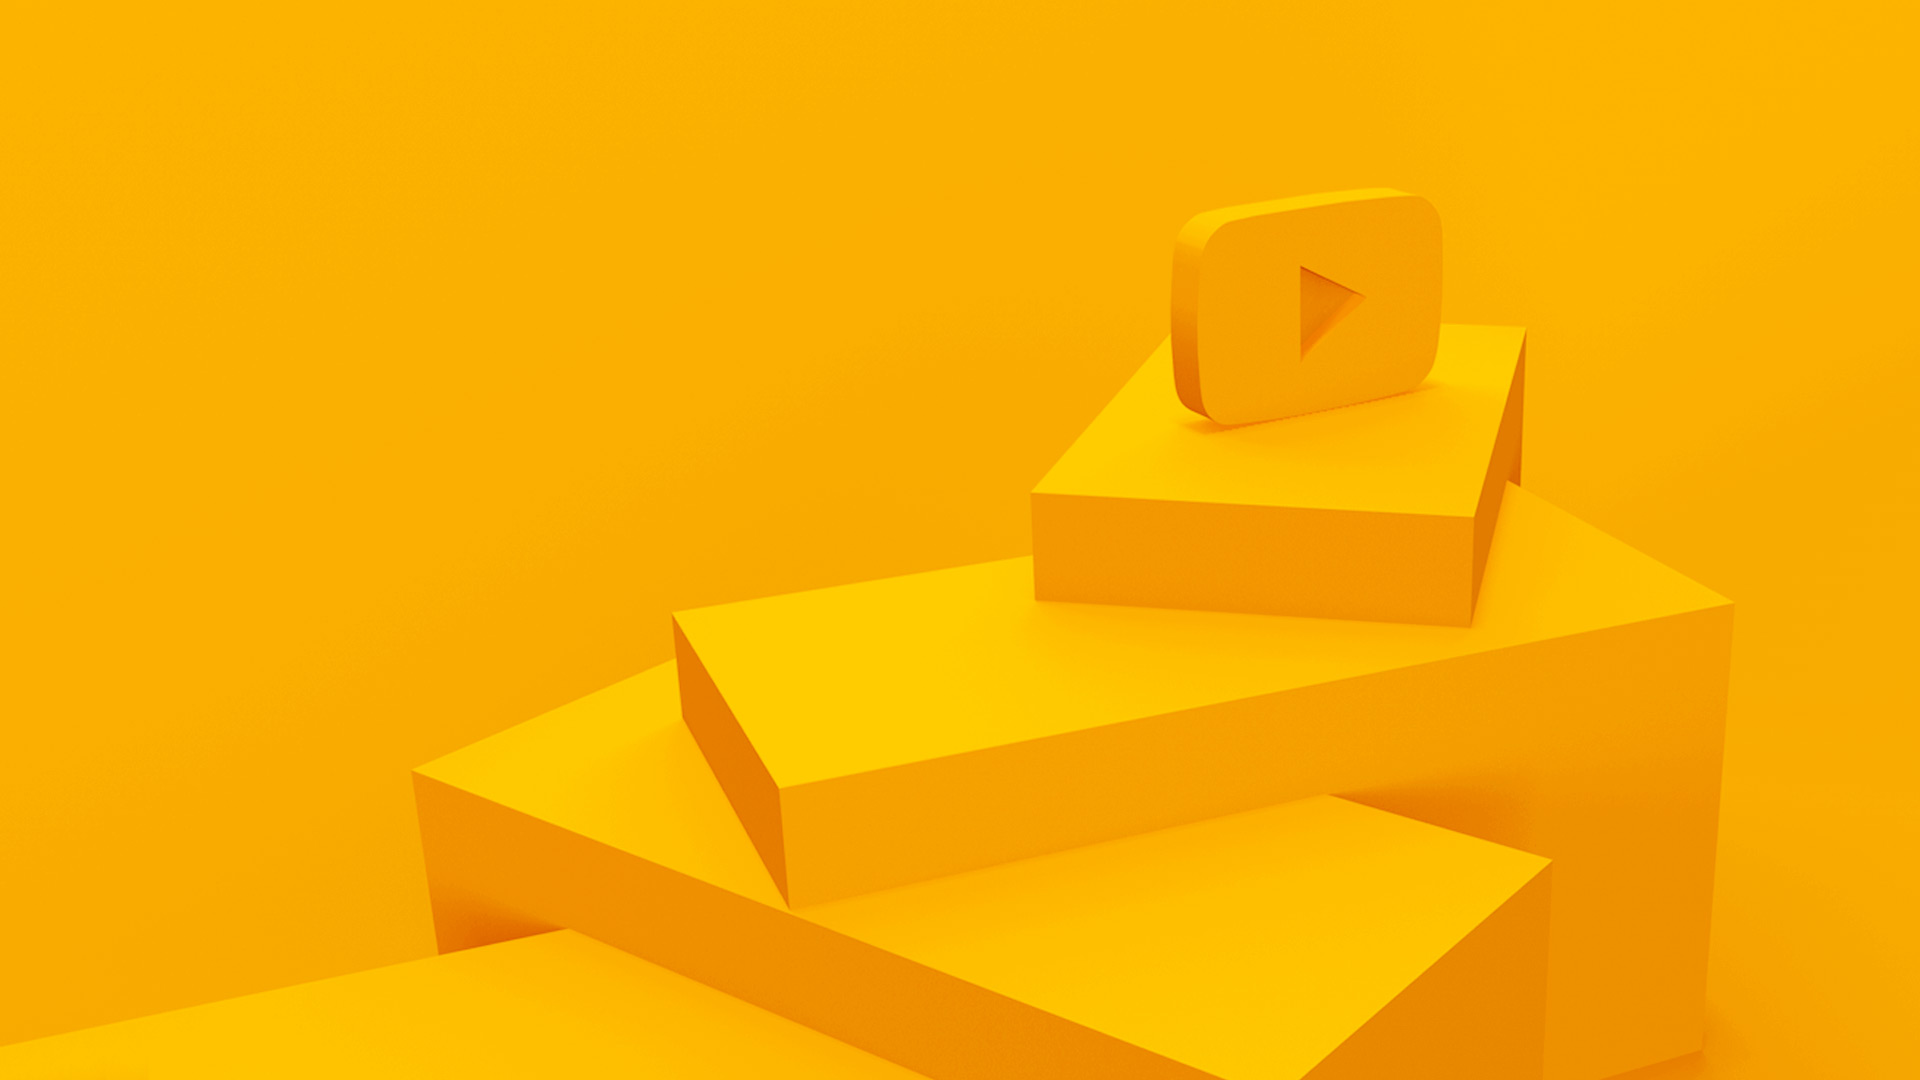 3d steps and youtube logo